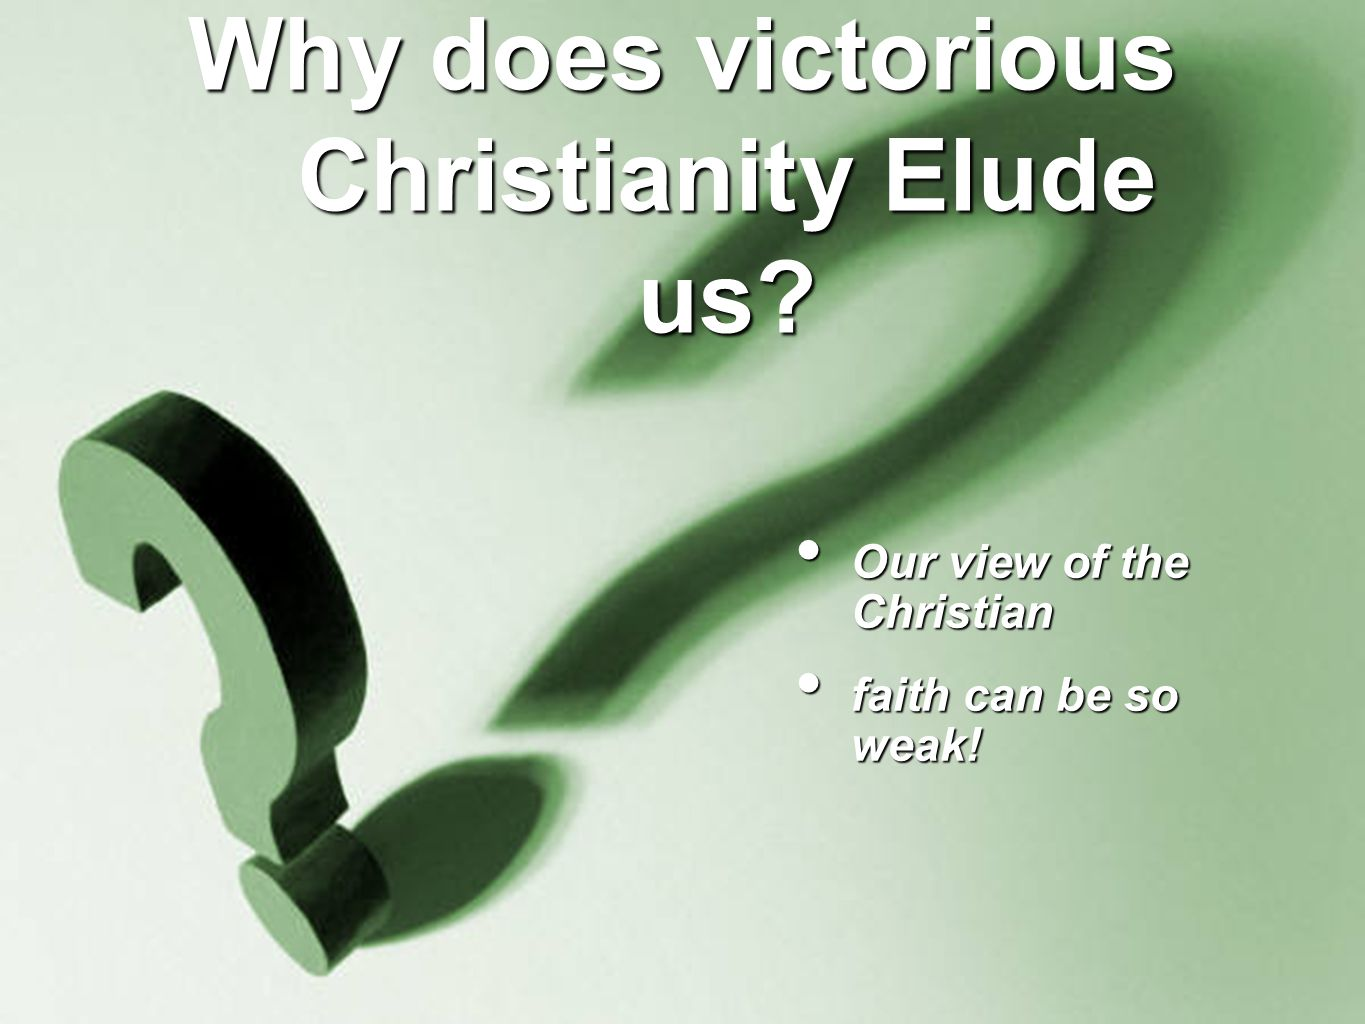 Why does victorious Christianity Elude us